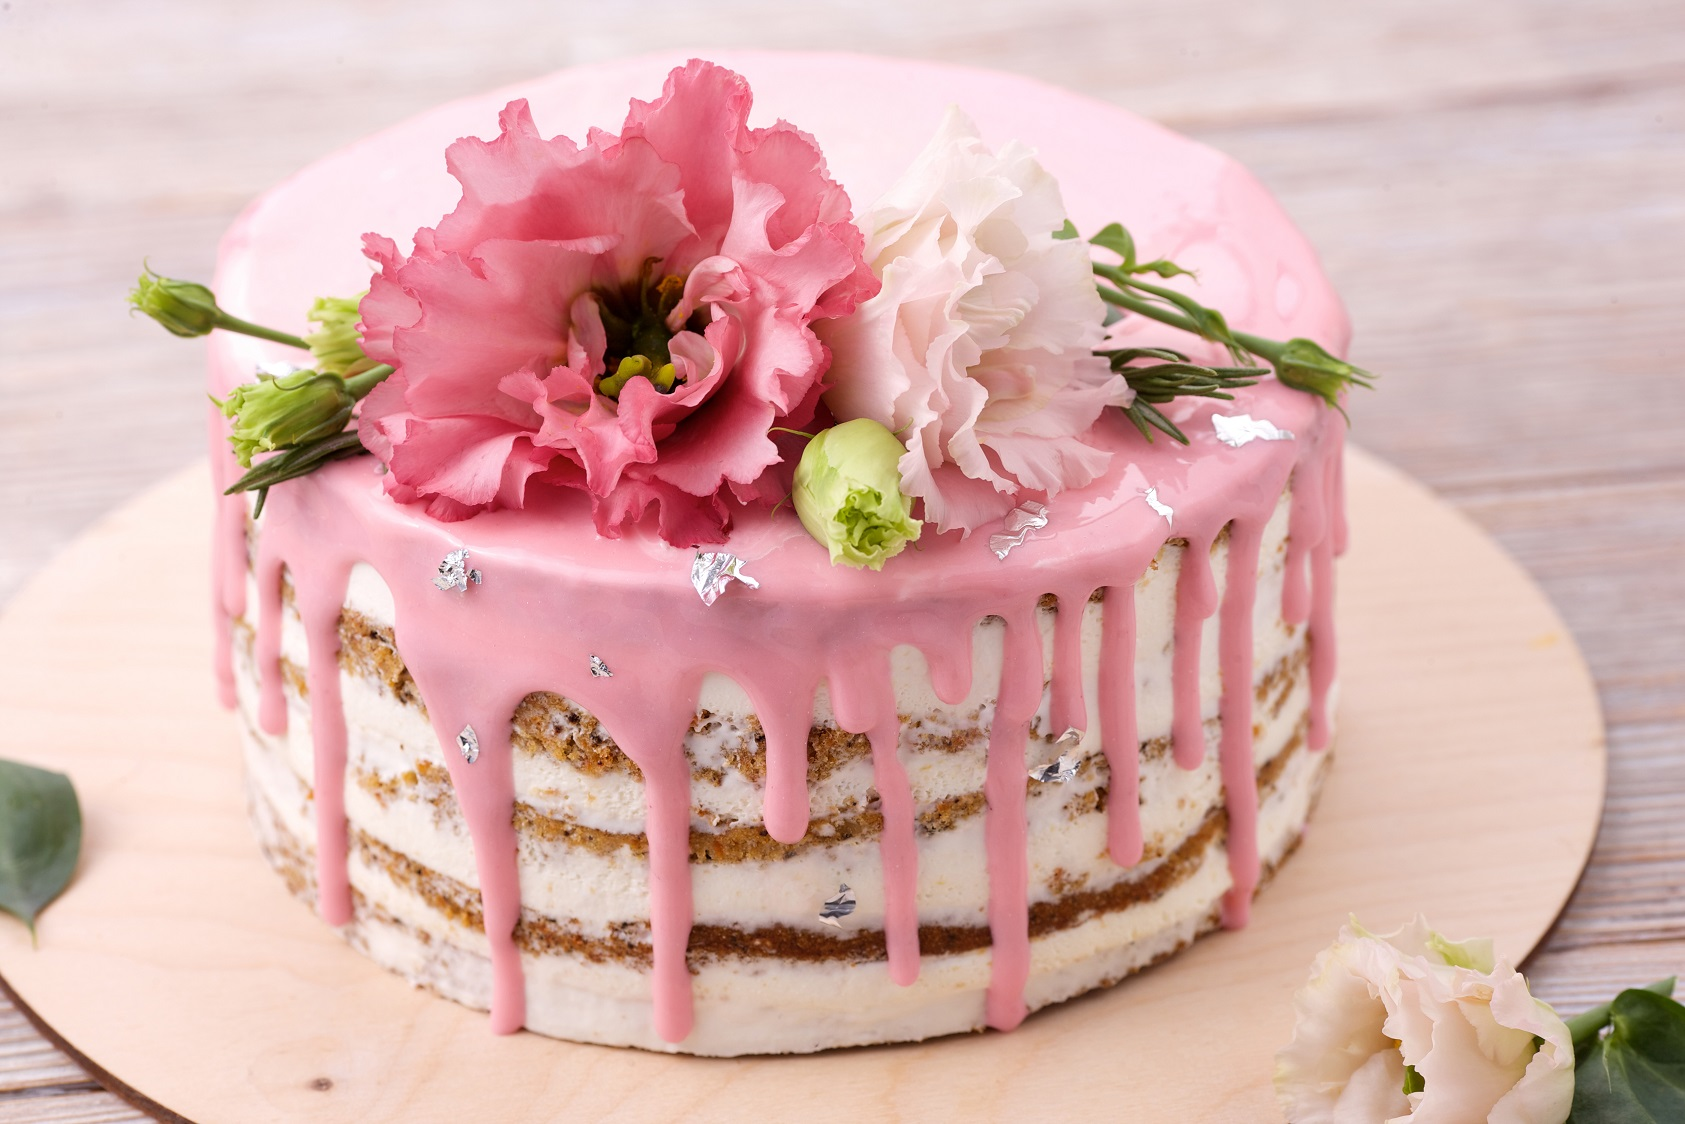 Gourmet Cakes - 24 hours notice required - Includes G/F and G/F Vegan varieties